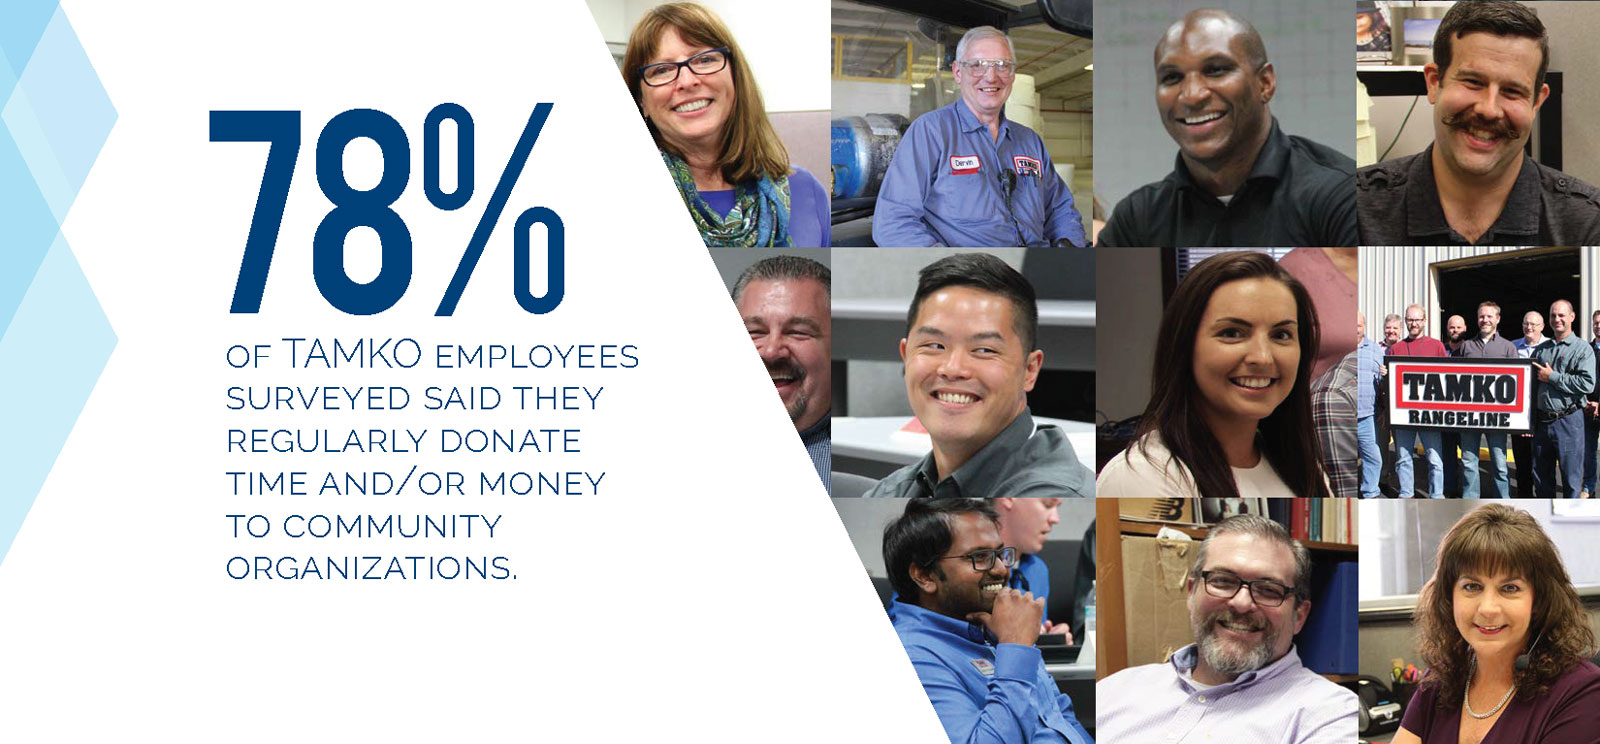 78% of TAMKO employees surveyed said they regularly dontate time and/or money to community organizations